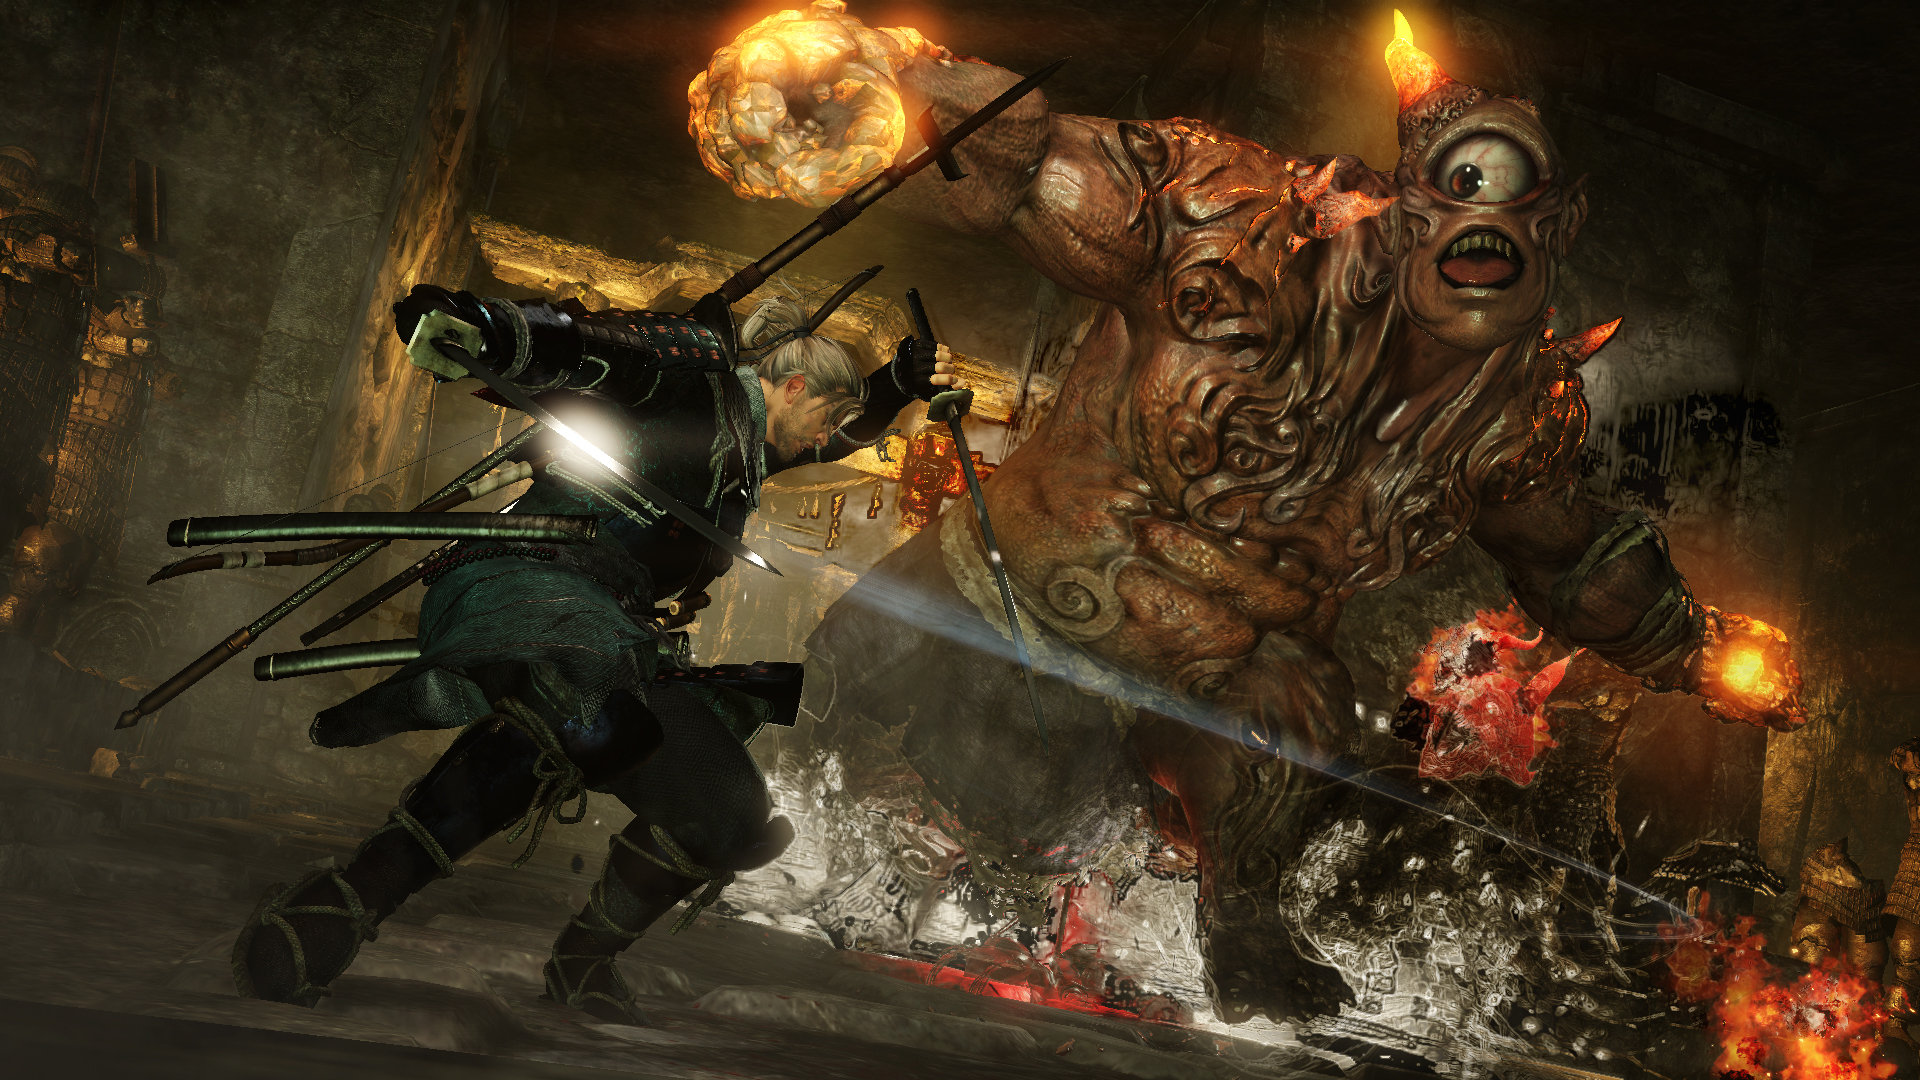 matchmaking nioh After the dark souls series ended last year, gamers were left with a void in that style of gaming but does nioh have what it takes to fill that hole in souls.